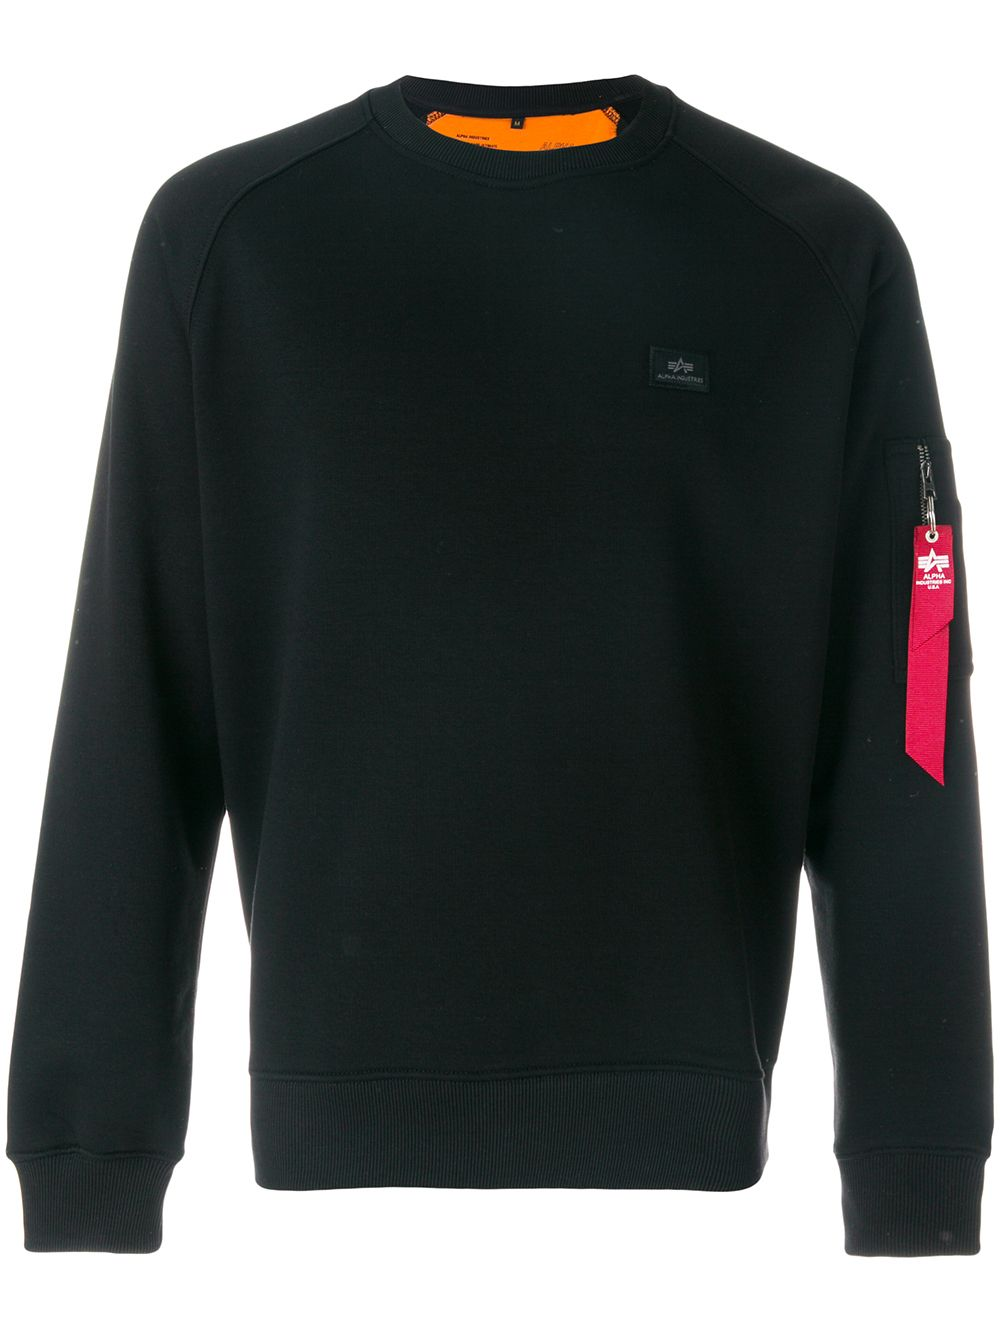 X - Fit sweat ALPHA INDUSTRIES | Sweatshirts | 15832003